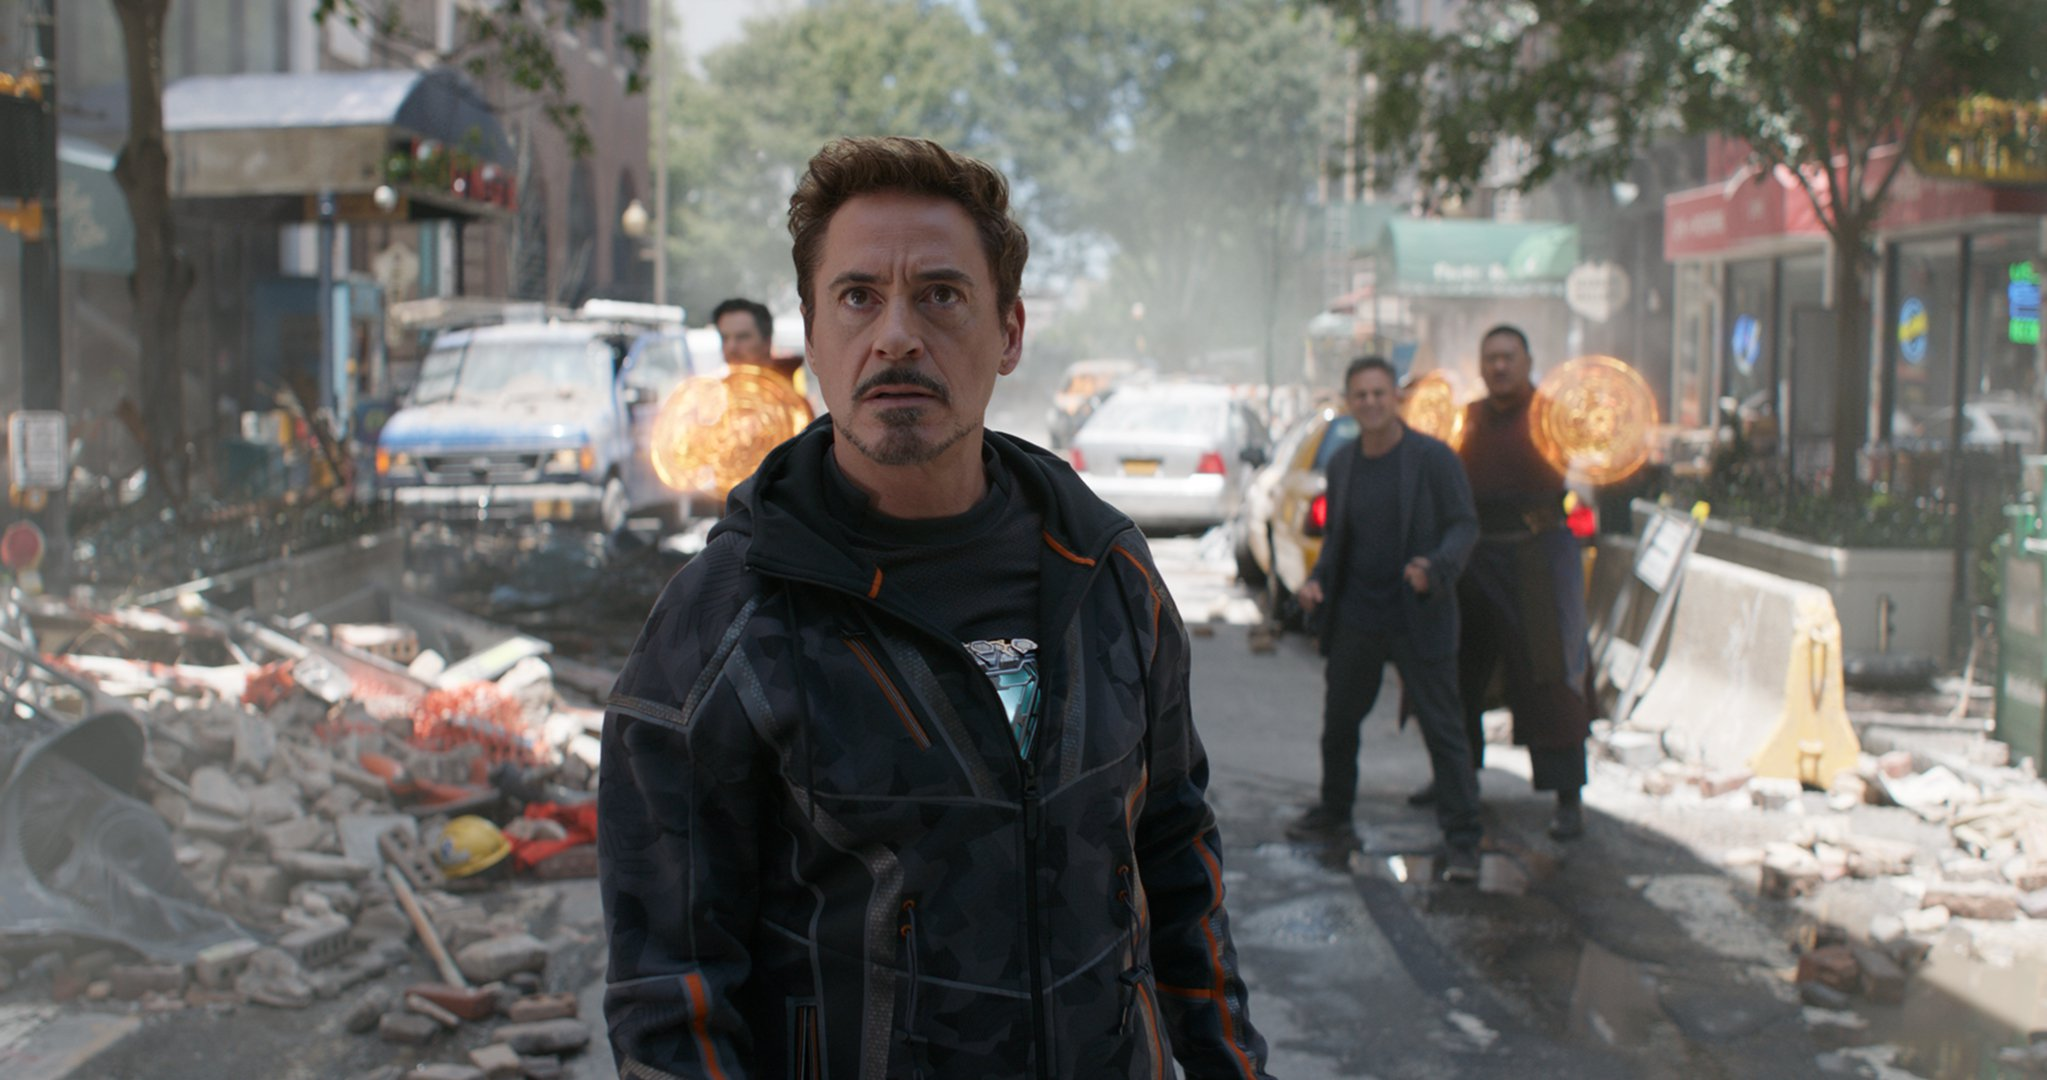 Avengers theory predicts Endgame will be told from Tony Stark's point of view